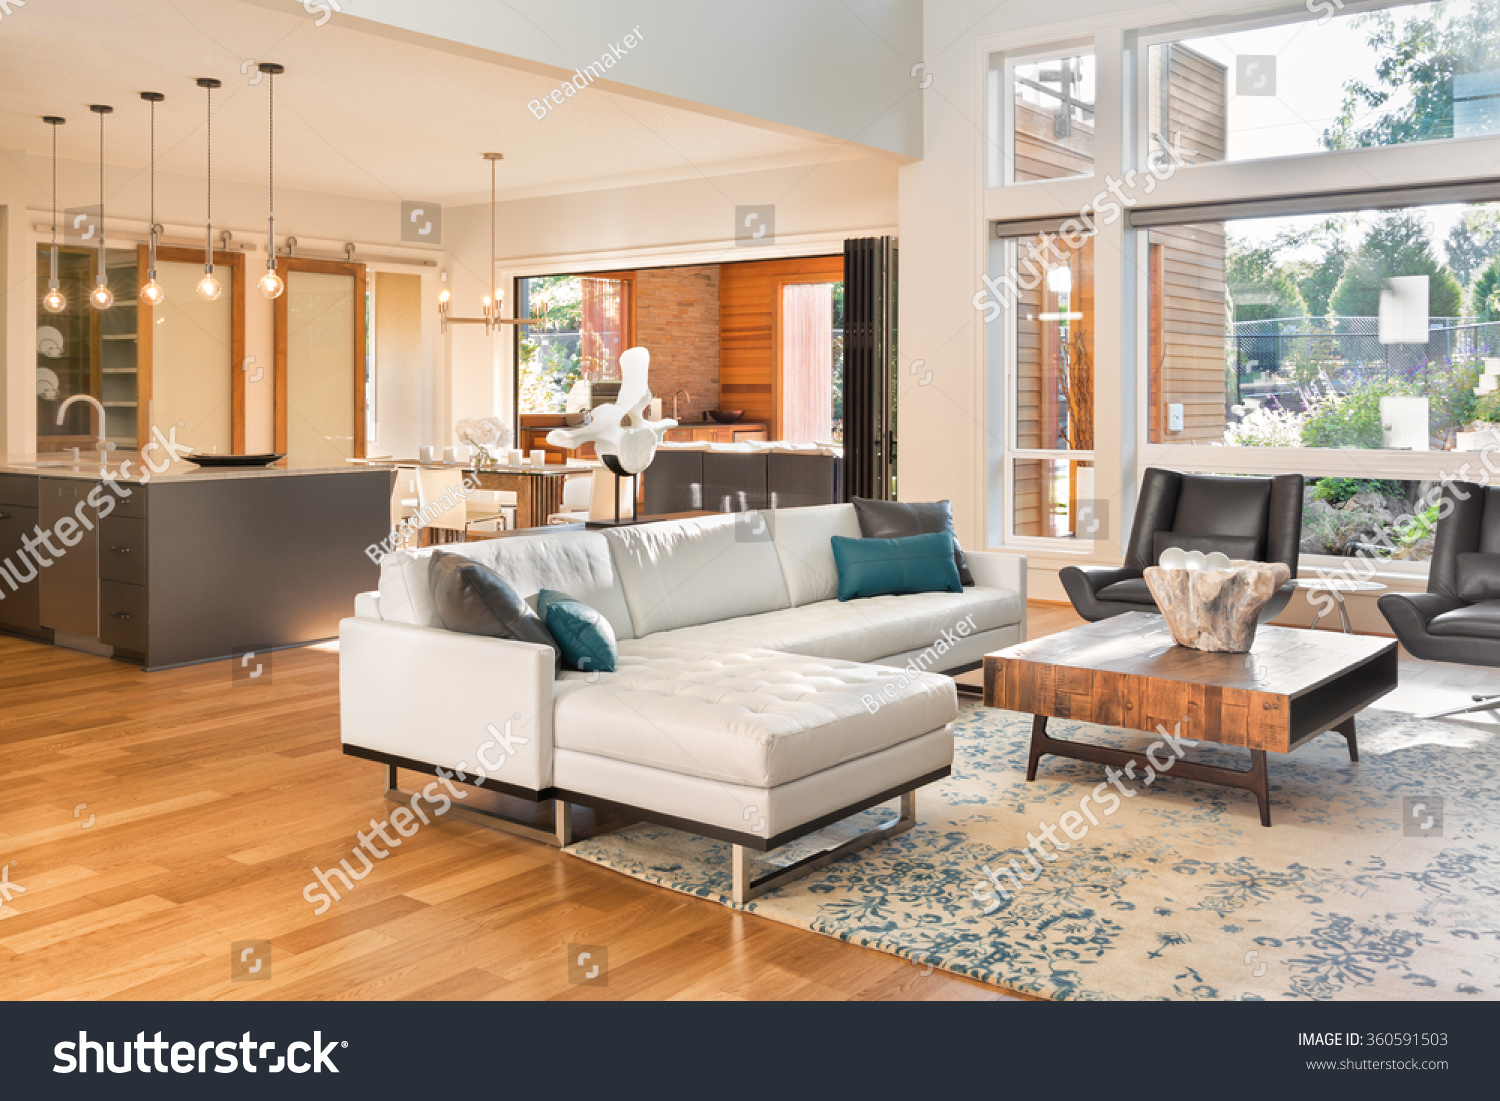 Beautiful living room interior new luxury stock photo for House beautiful living rooms photos